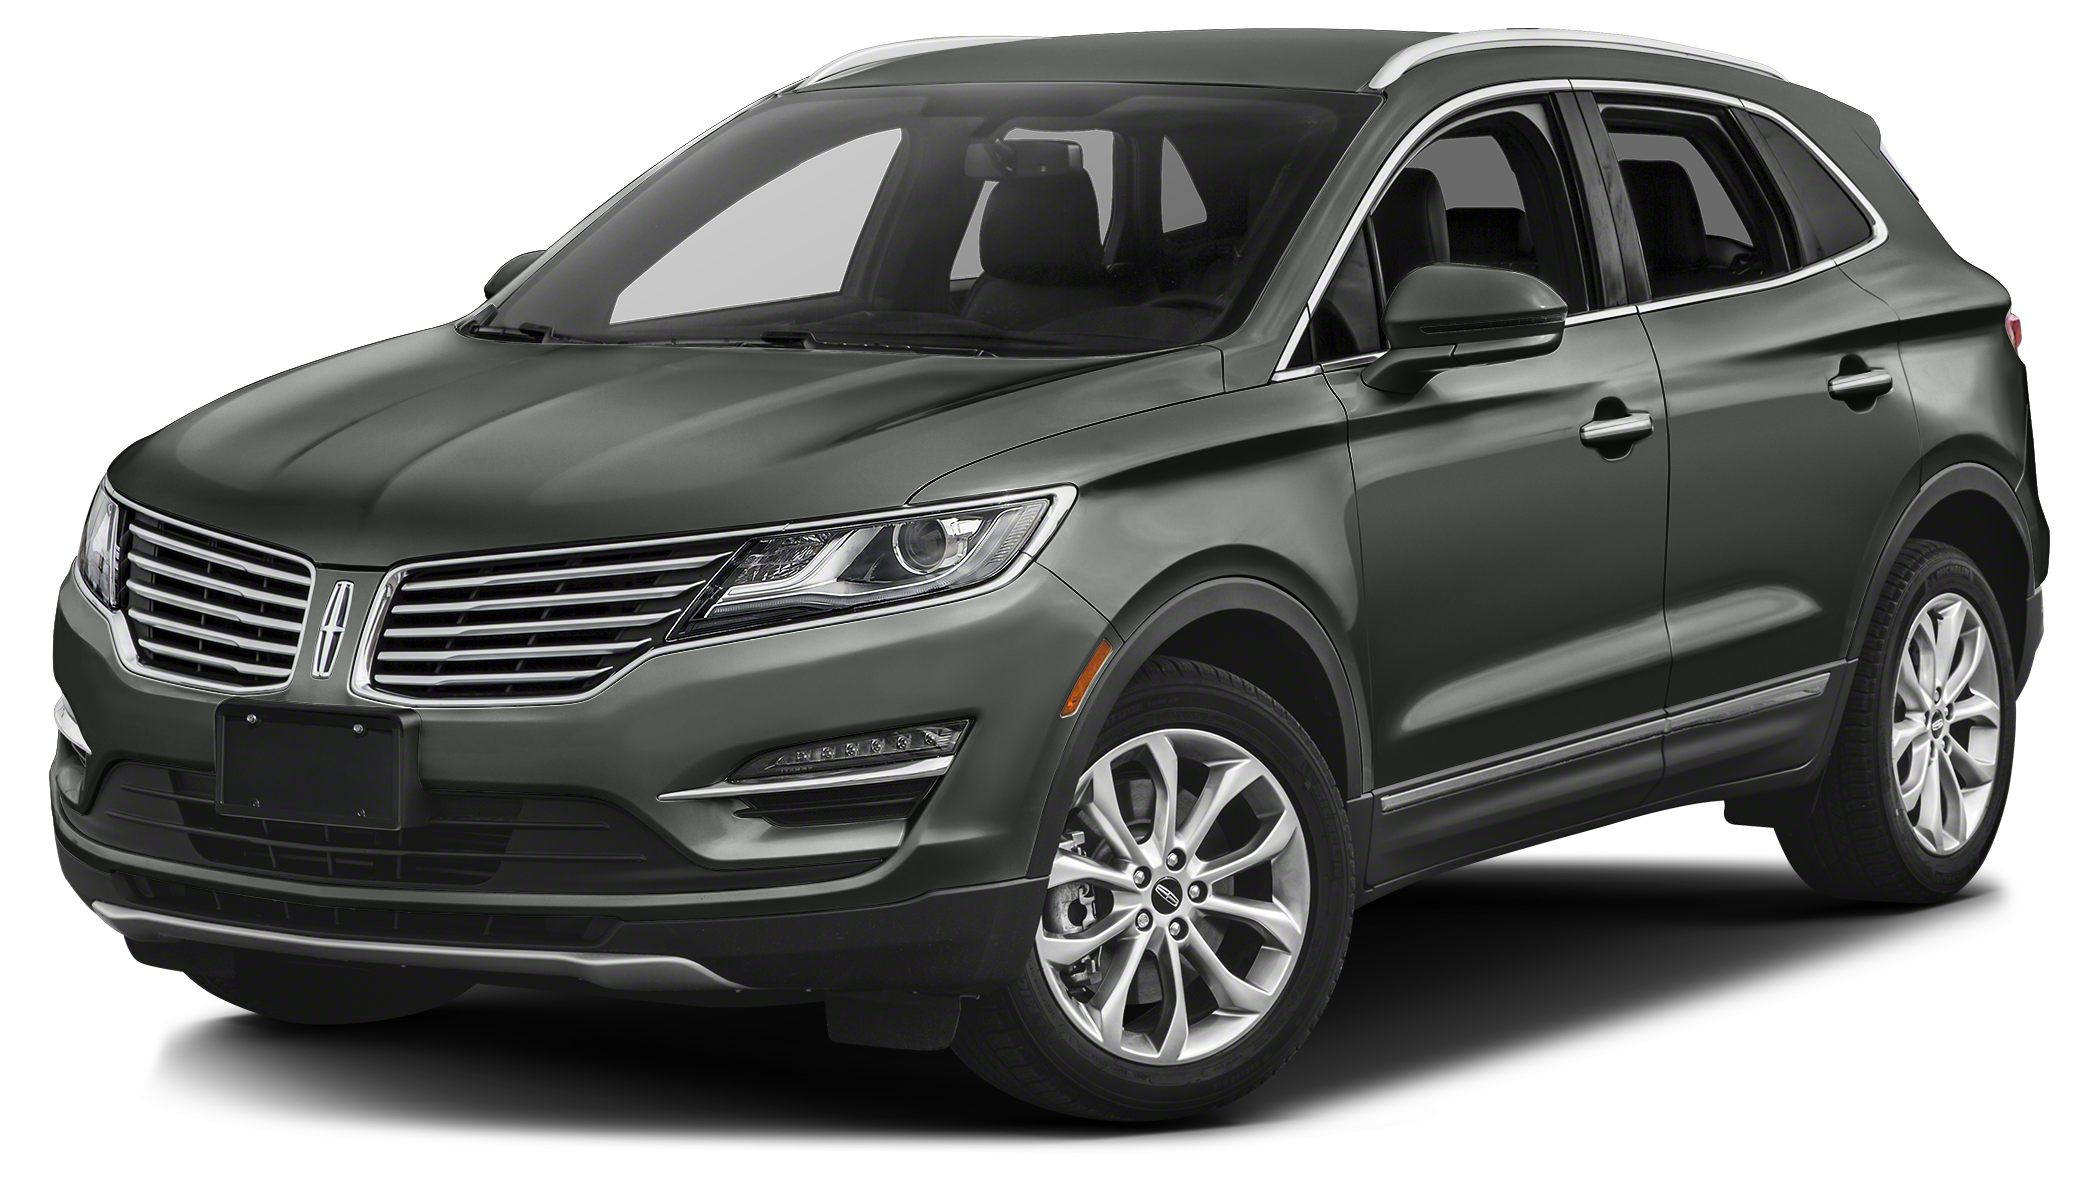 2018 Lincoln MKC Premiere This 2018 Lincoln MKC is a real winner with features like a backup senso